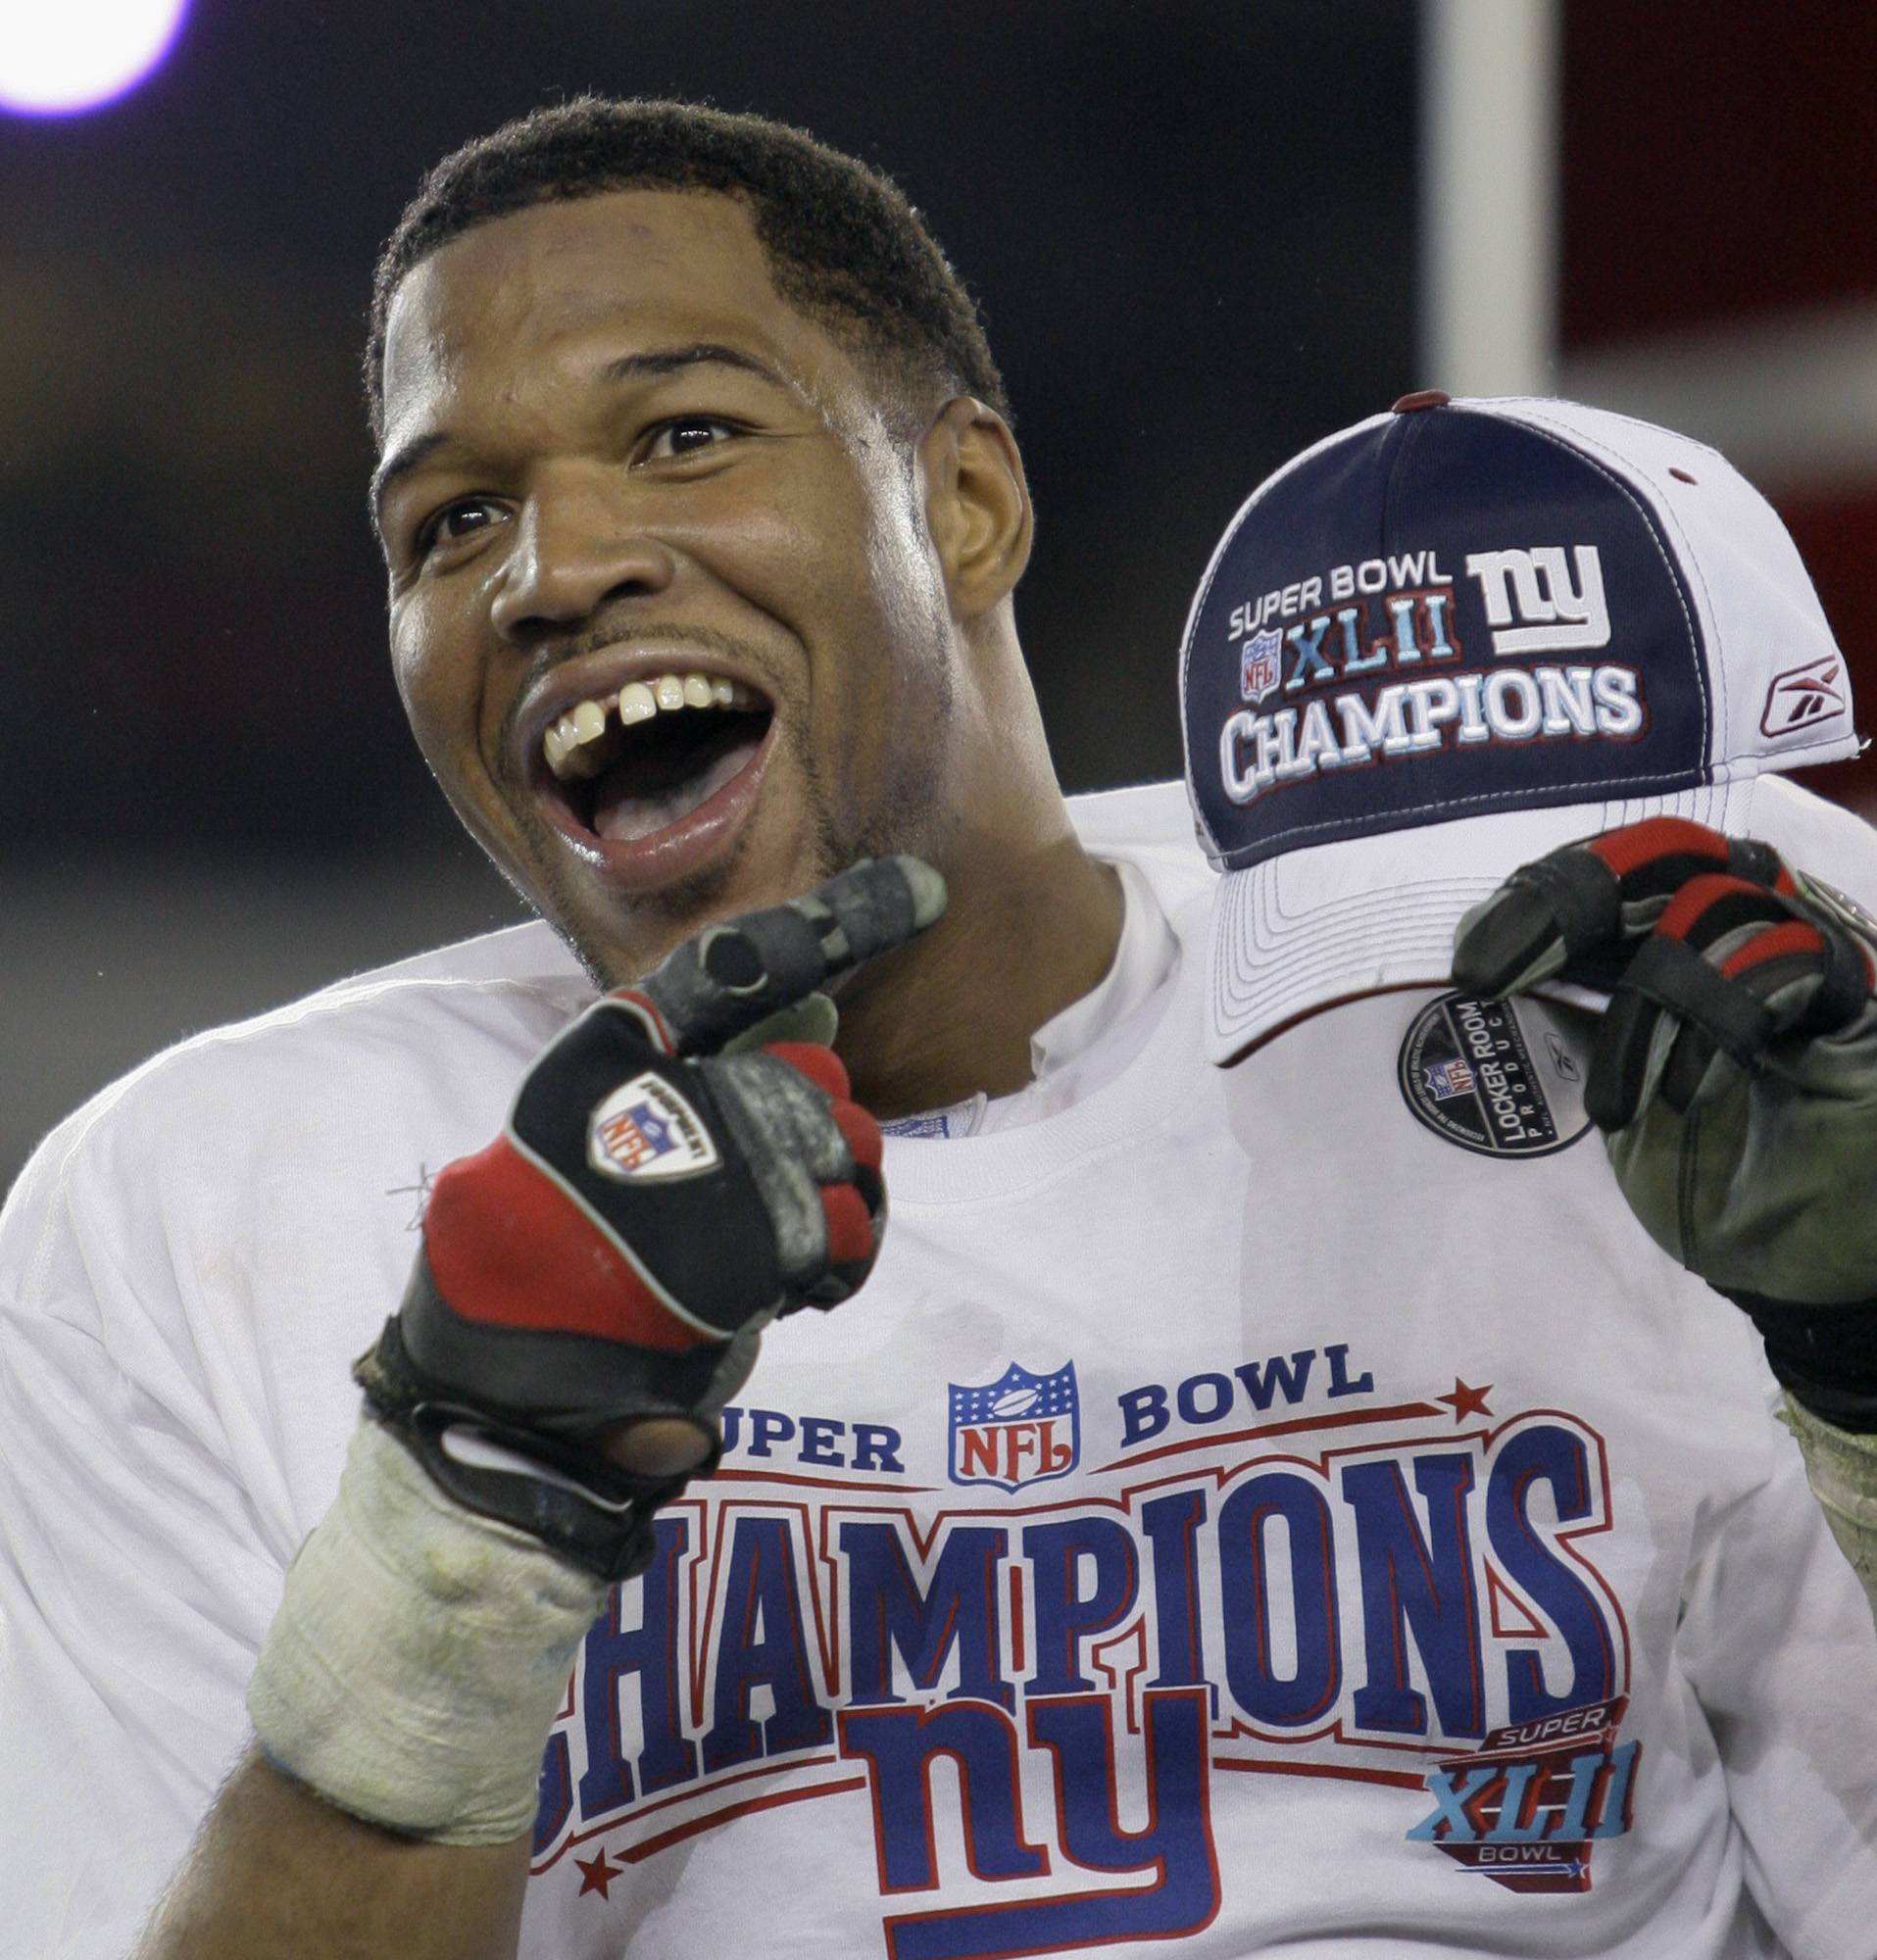 Former New York Giants defensive end Michael Strahan, shown here in 2008, was a game-changer on the field — but he made his mark elsewhere with his gregarious personality, gaptoothed smile and willingness to step out of his comfort zone. He became a regular in commercials.